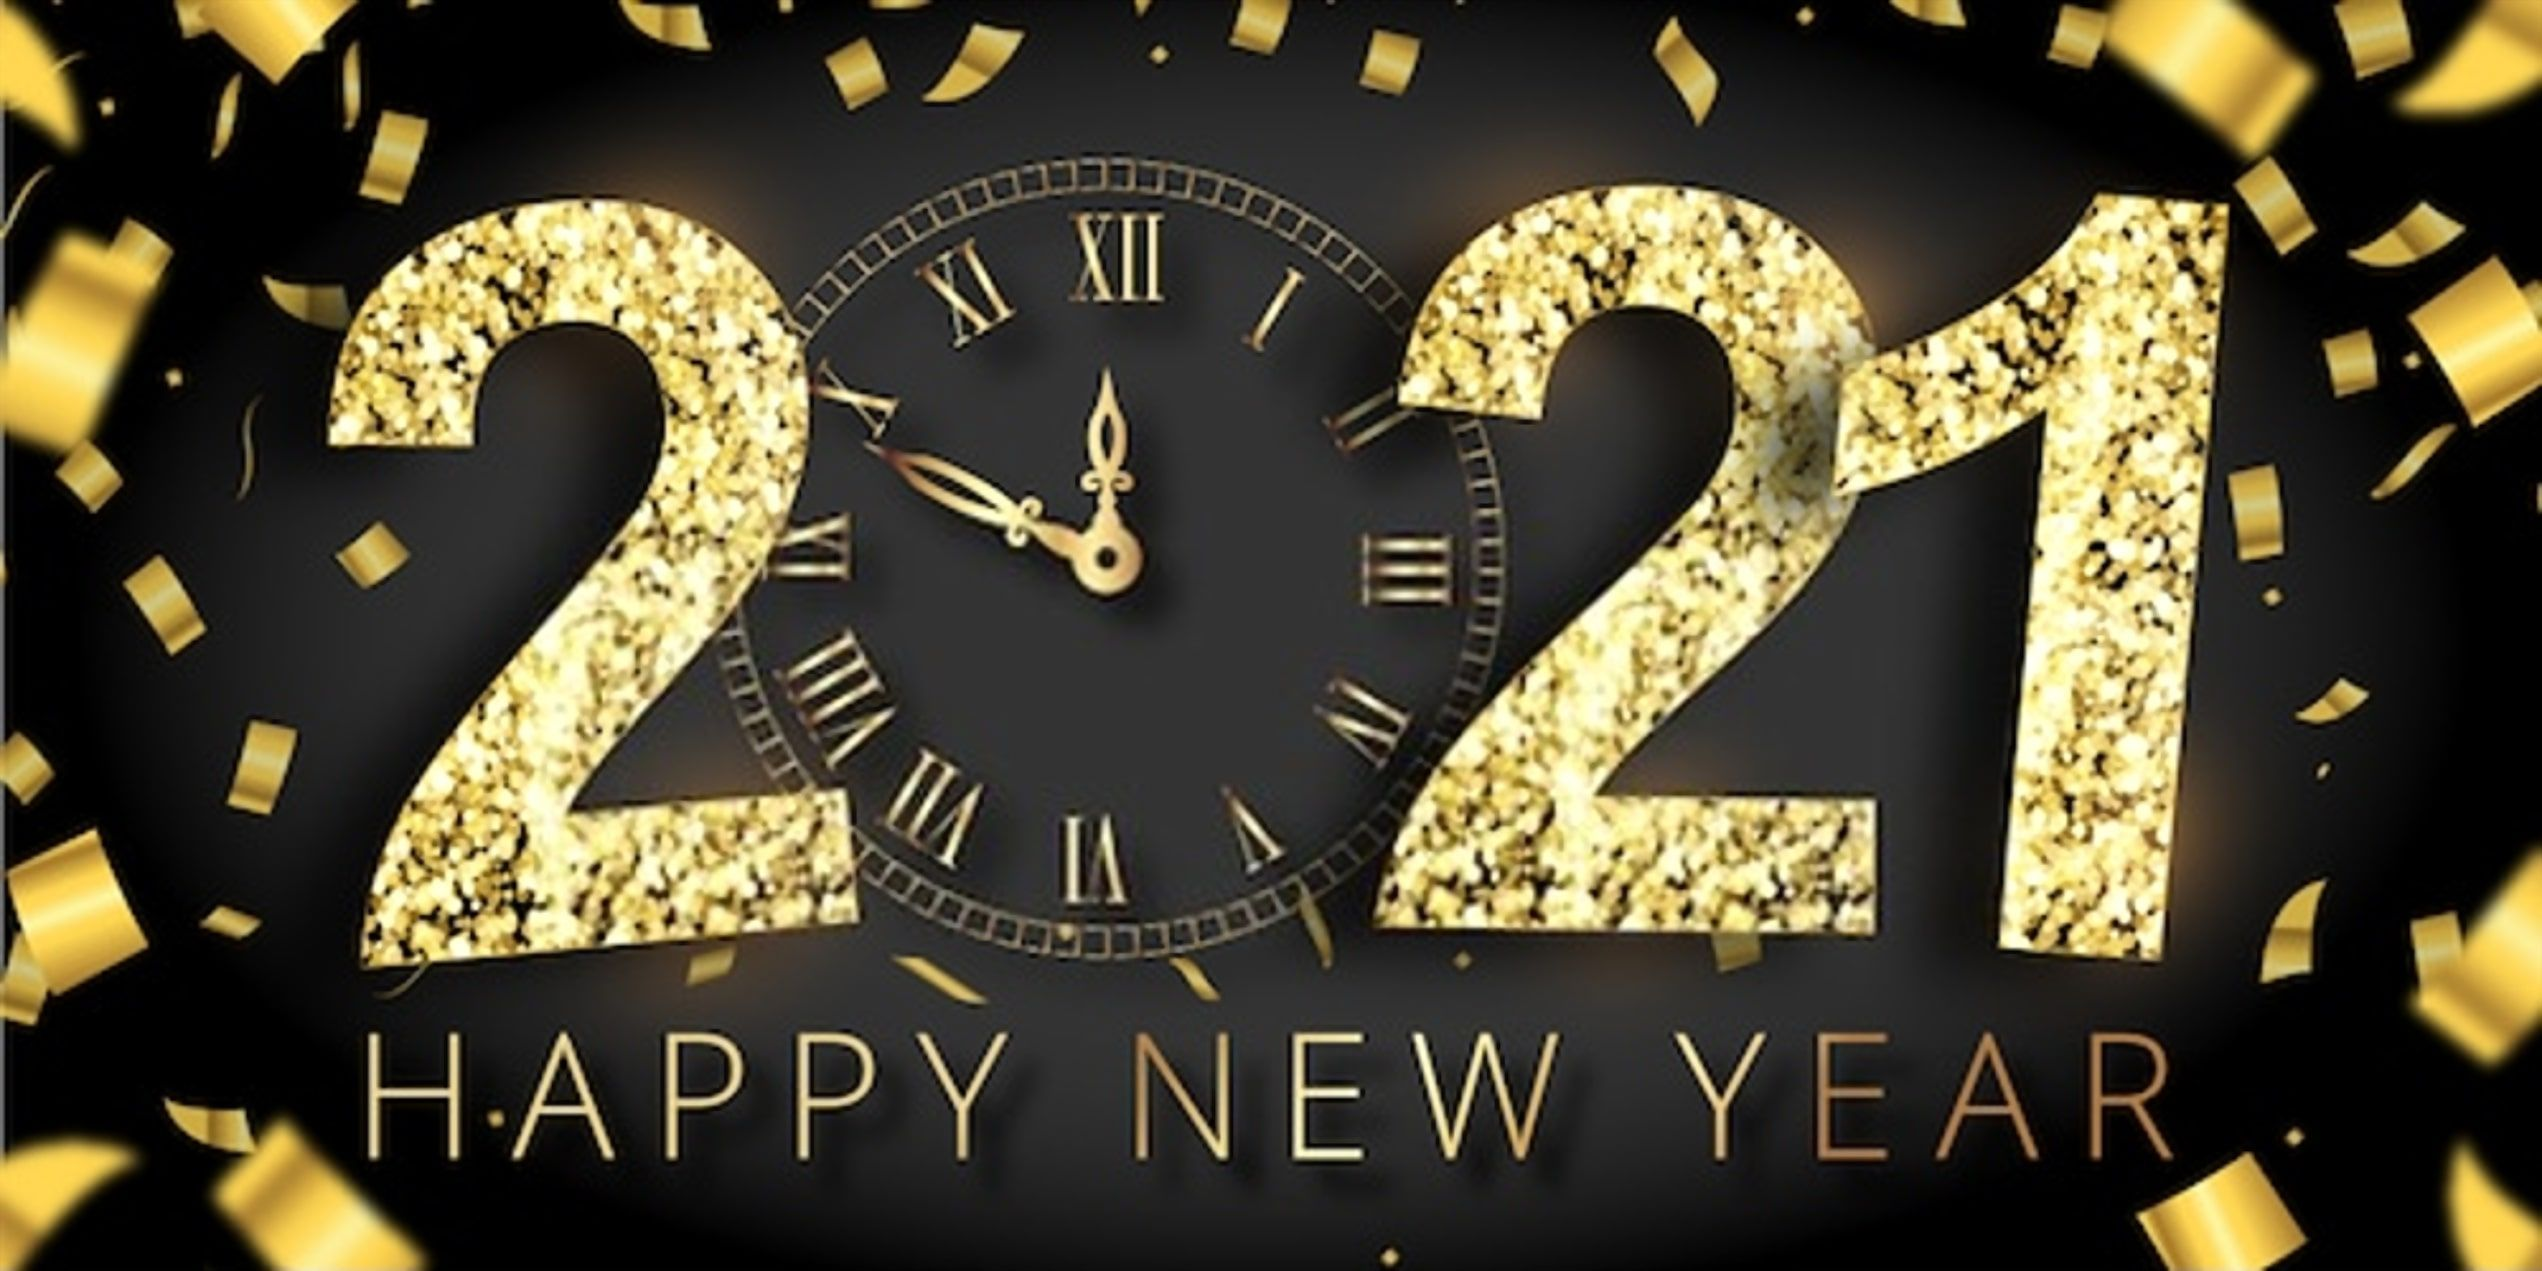 Happy New Year 2021 Wallpapers   Top Happy New Year 2021 2542x1271